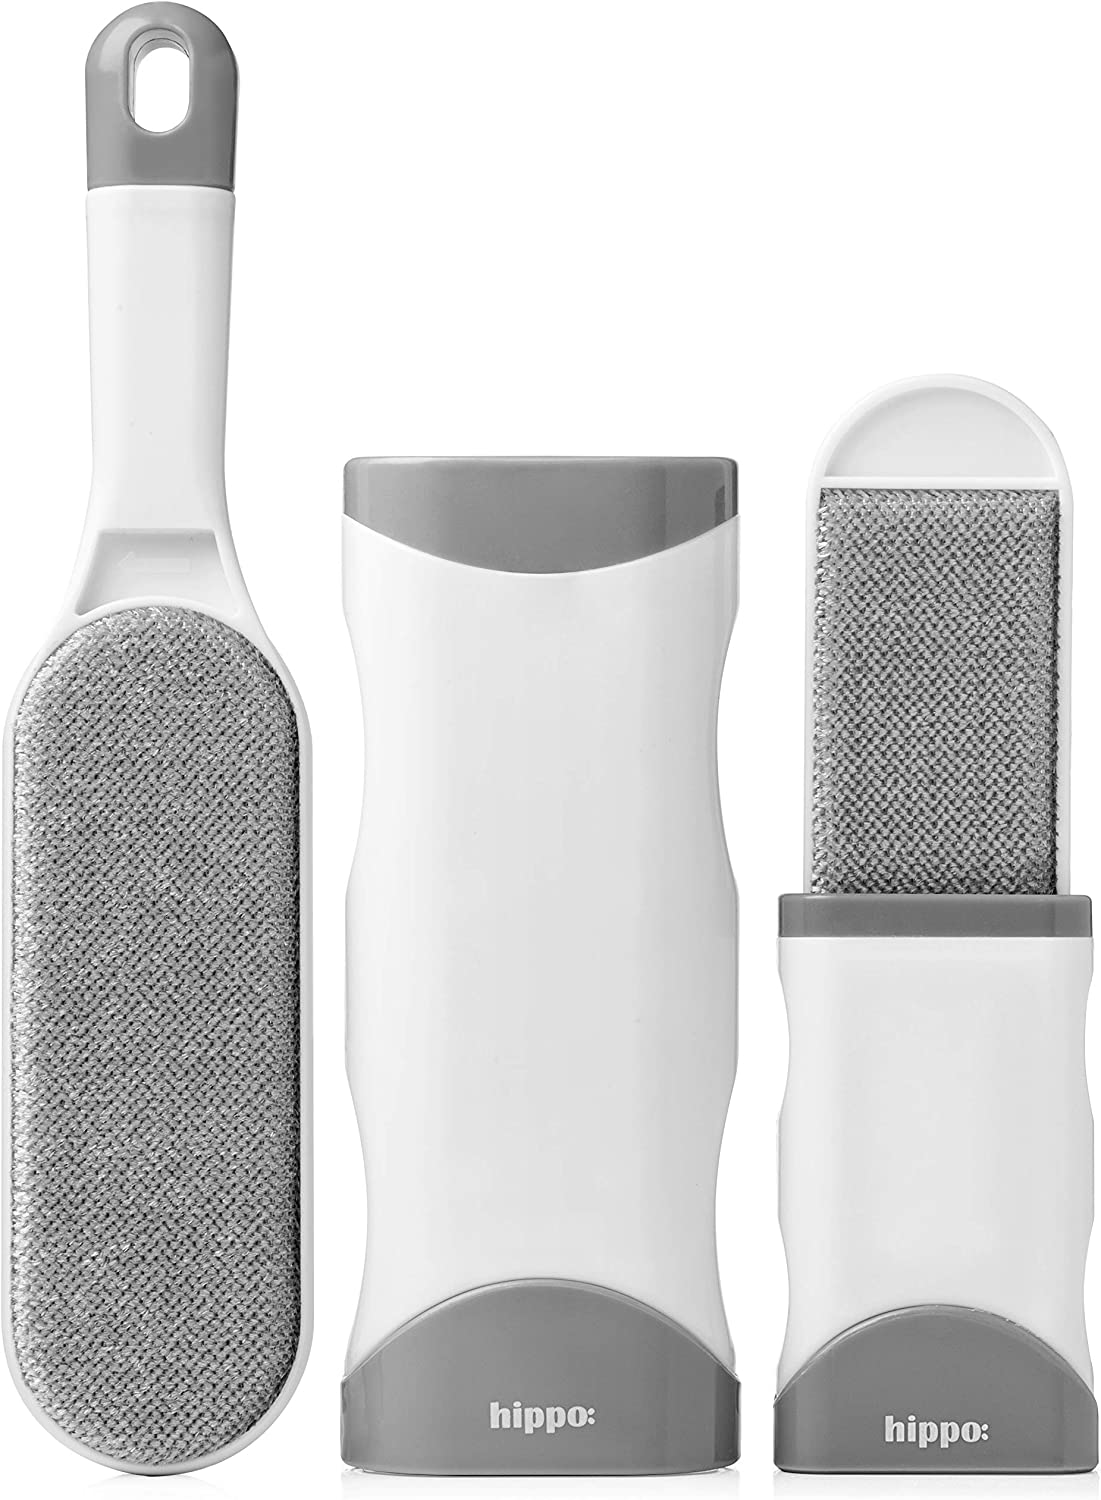 Pet Hair Remover - Reusable Lint Brush Pet Hair Remover with Easy Self Cleaning Base, Travel Size Included - Effective Dog & Cat Hair Remover for Clothing, Furniture, Couch - Fur & Lint Removal Brush